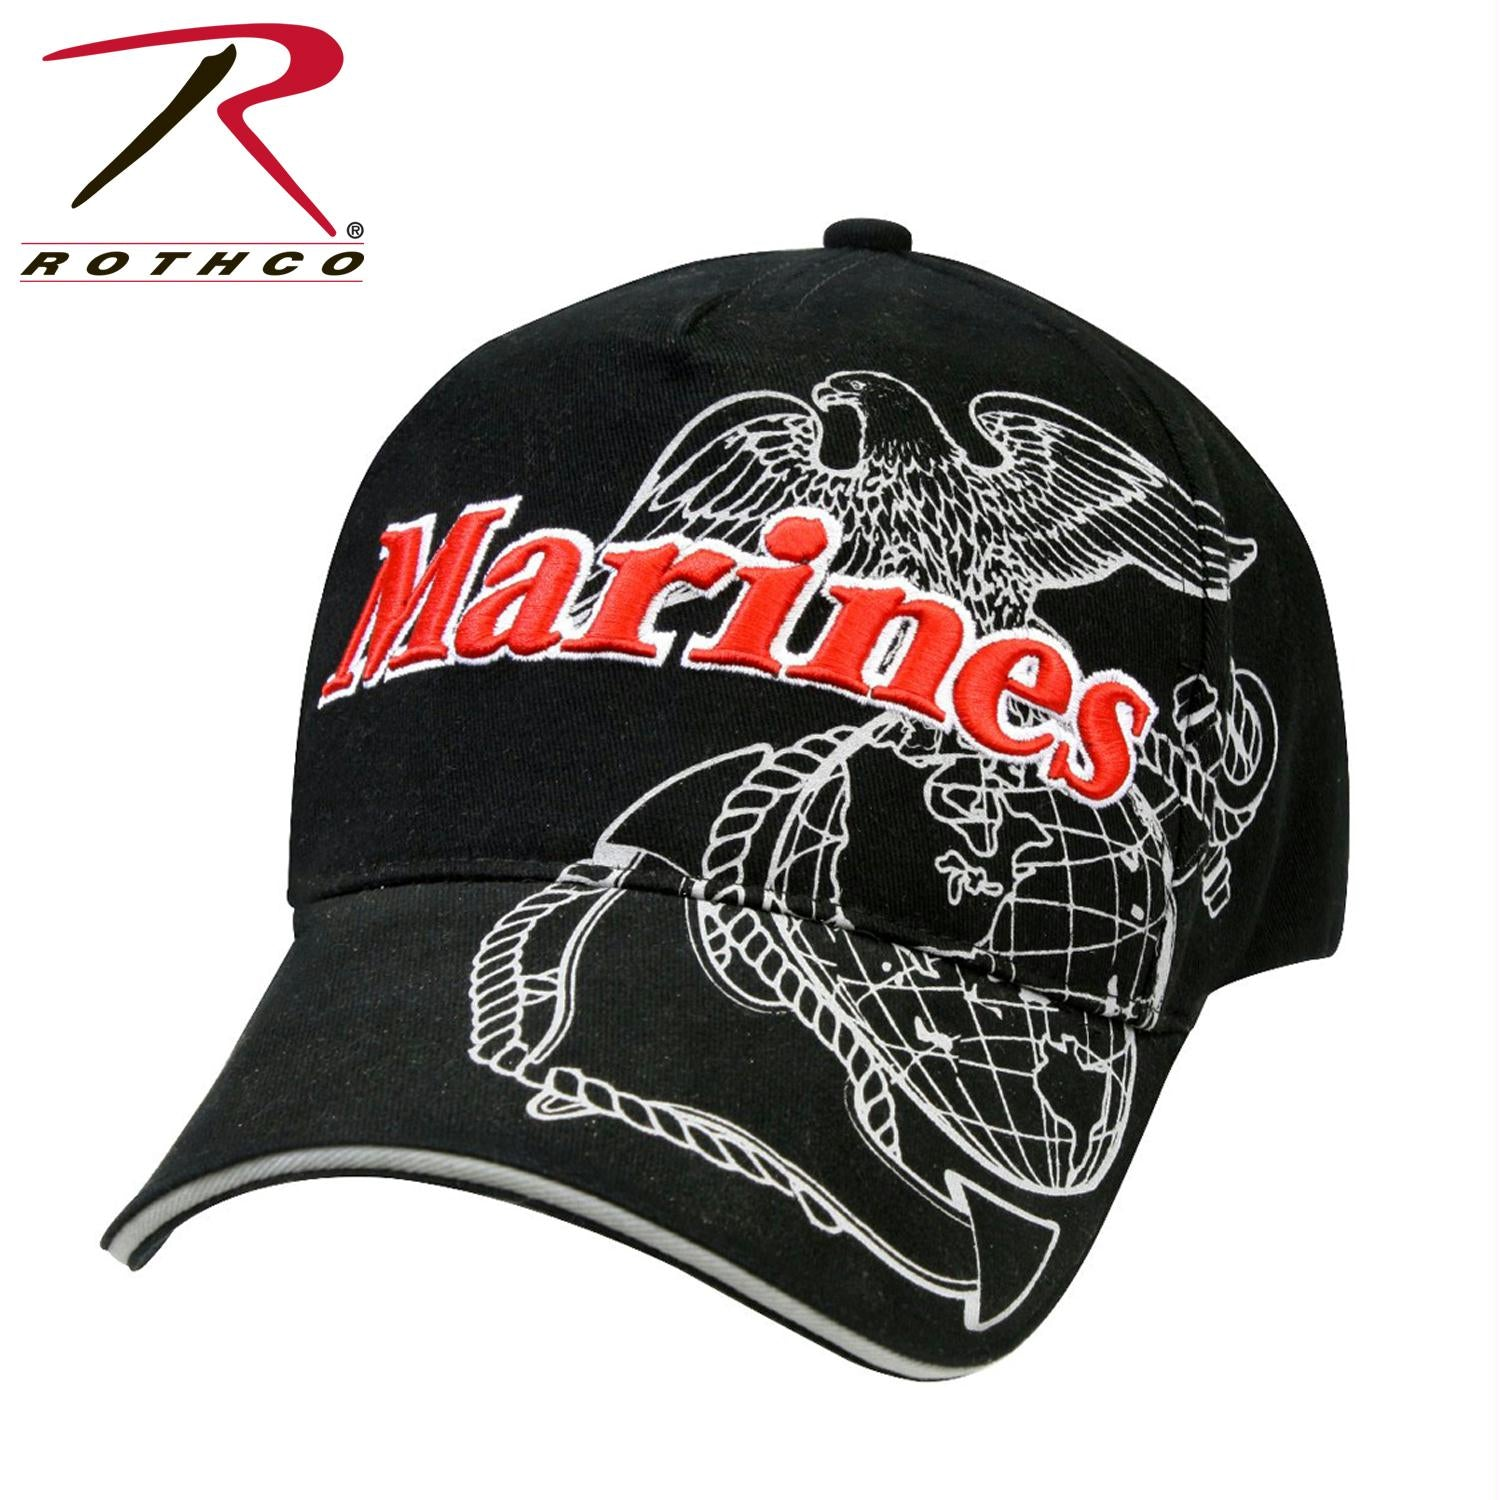 Rothco Deluxe Marines G&A Low Profile Insignia Cap